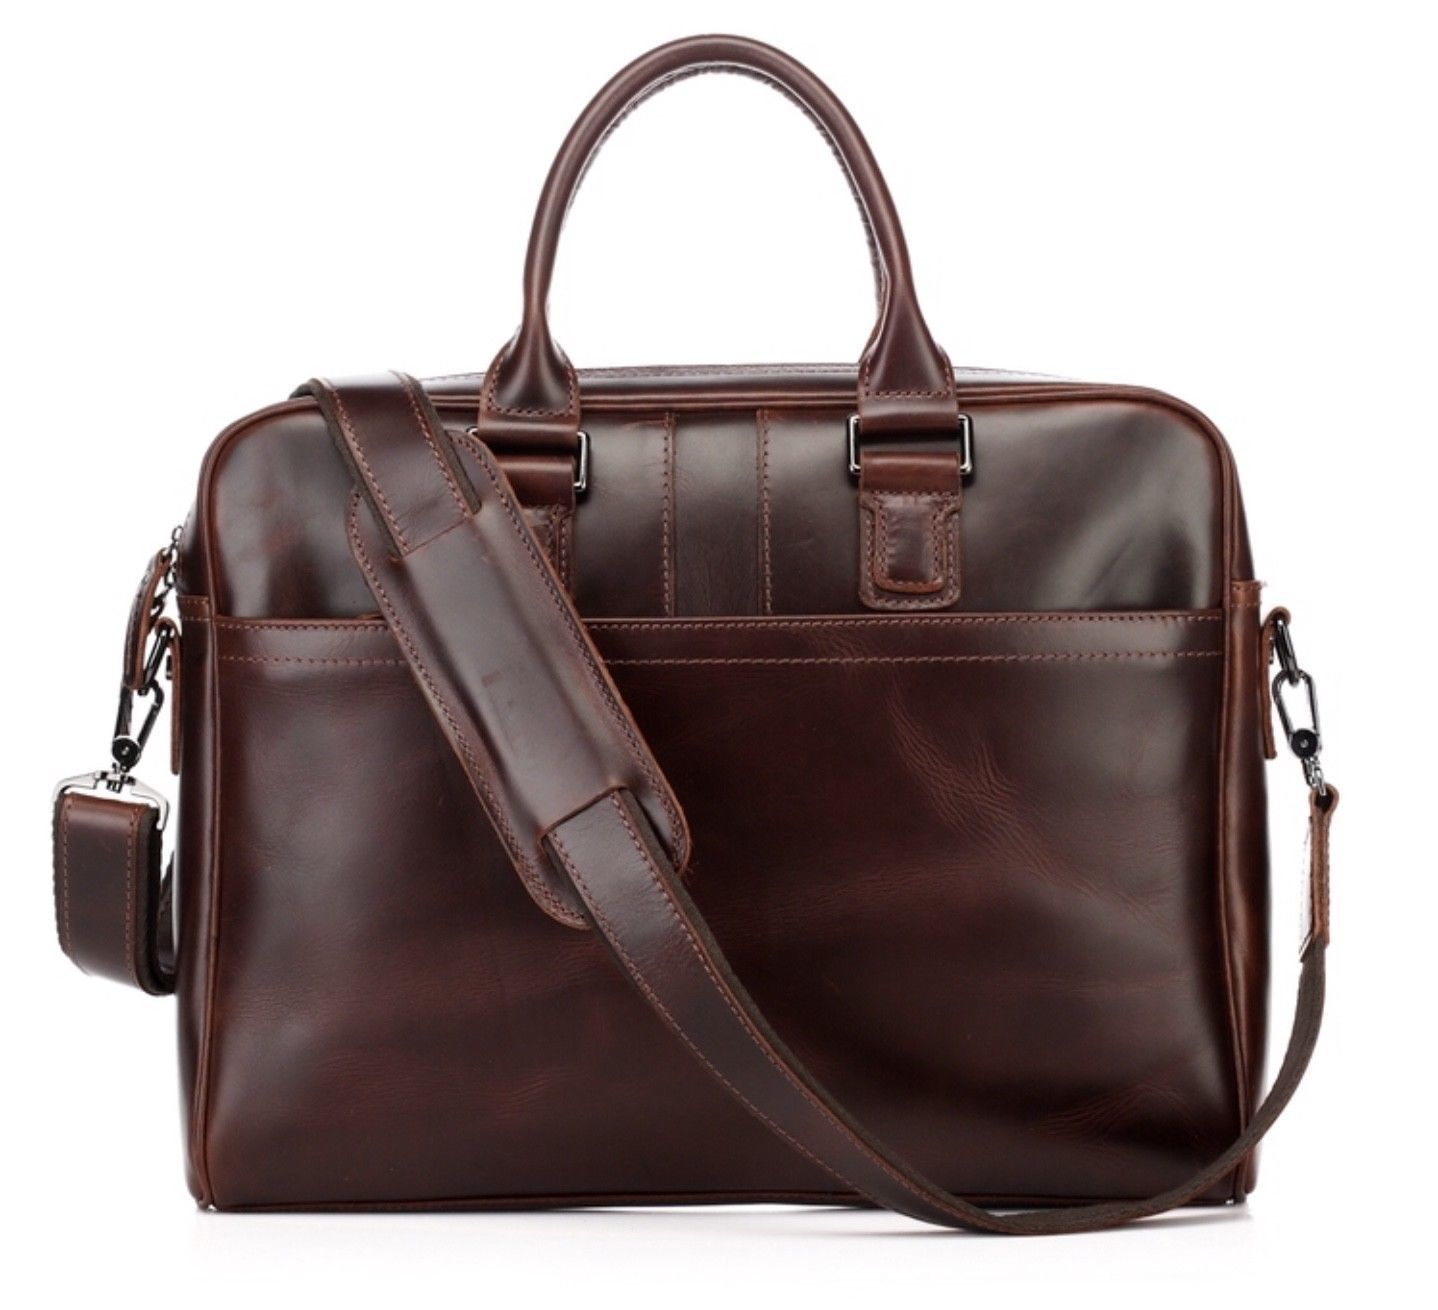 New Italian Leather Men's Bag Briefcase Messenger Bag Laptop Bag